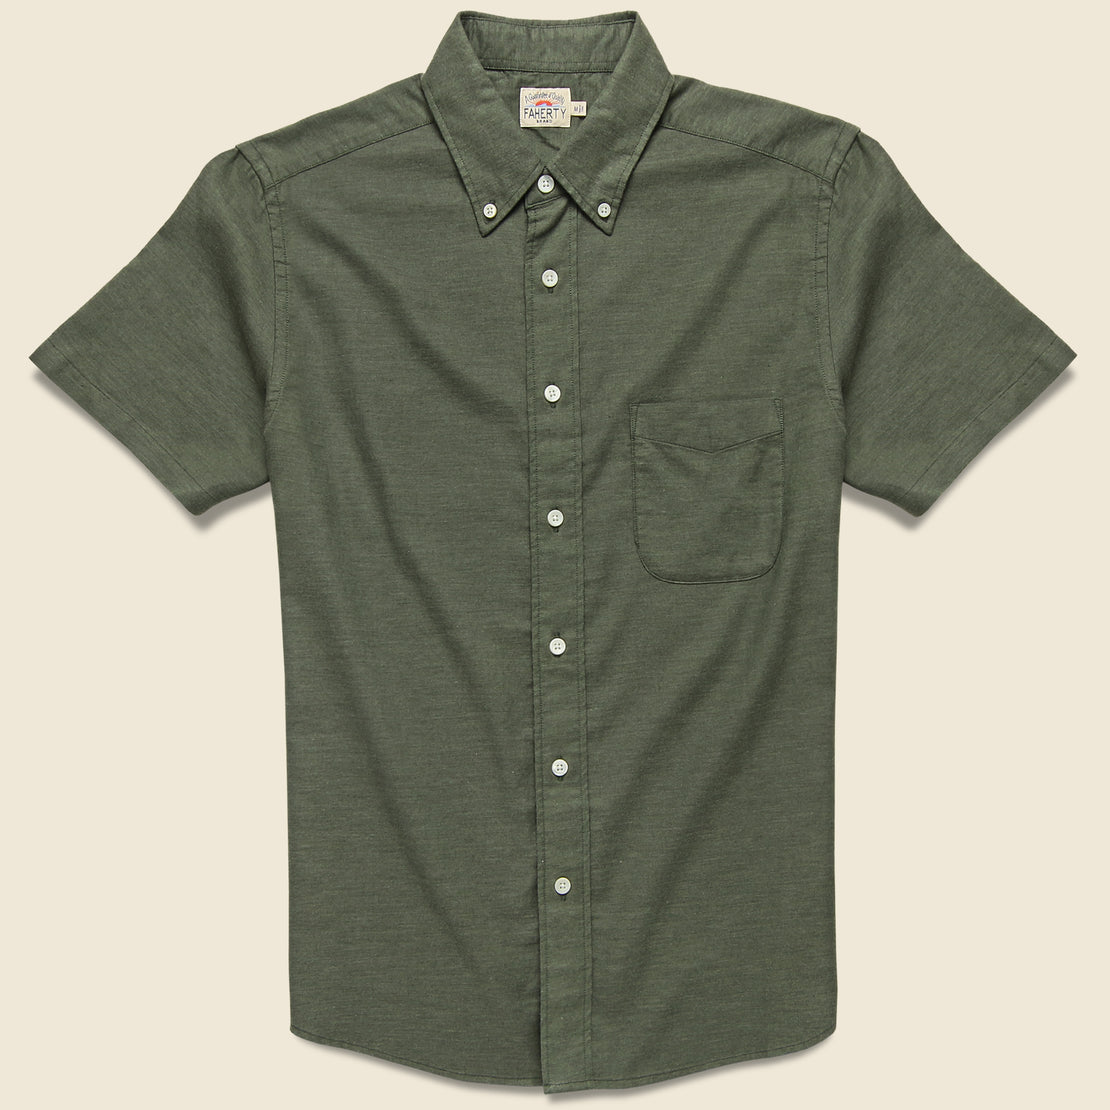 Faherty Stretch Oxford Shirt - Olive